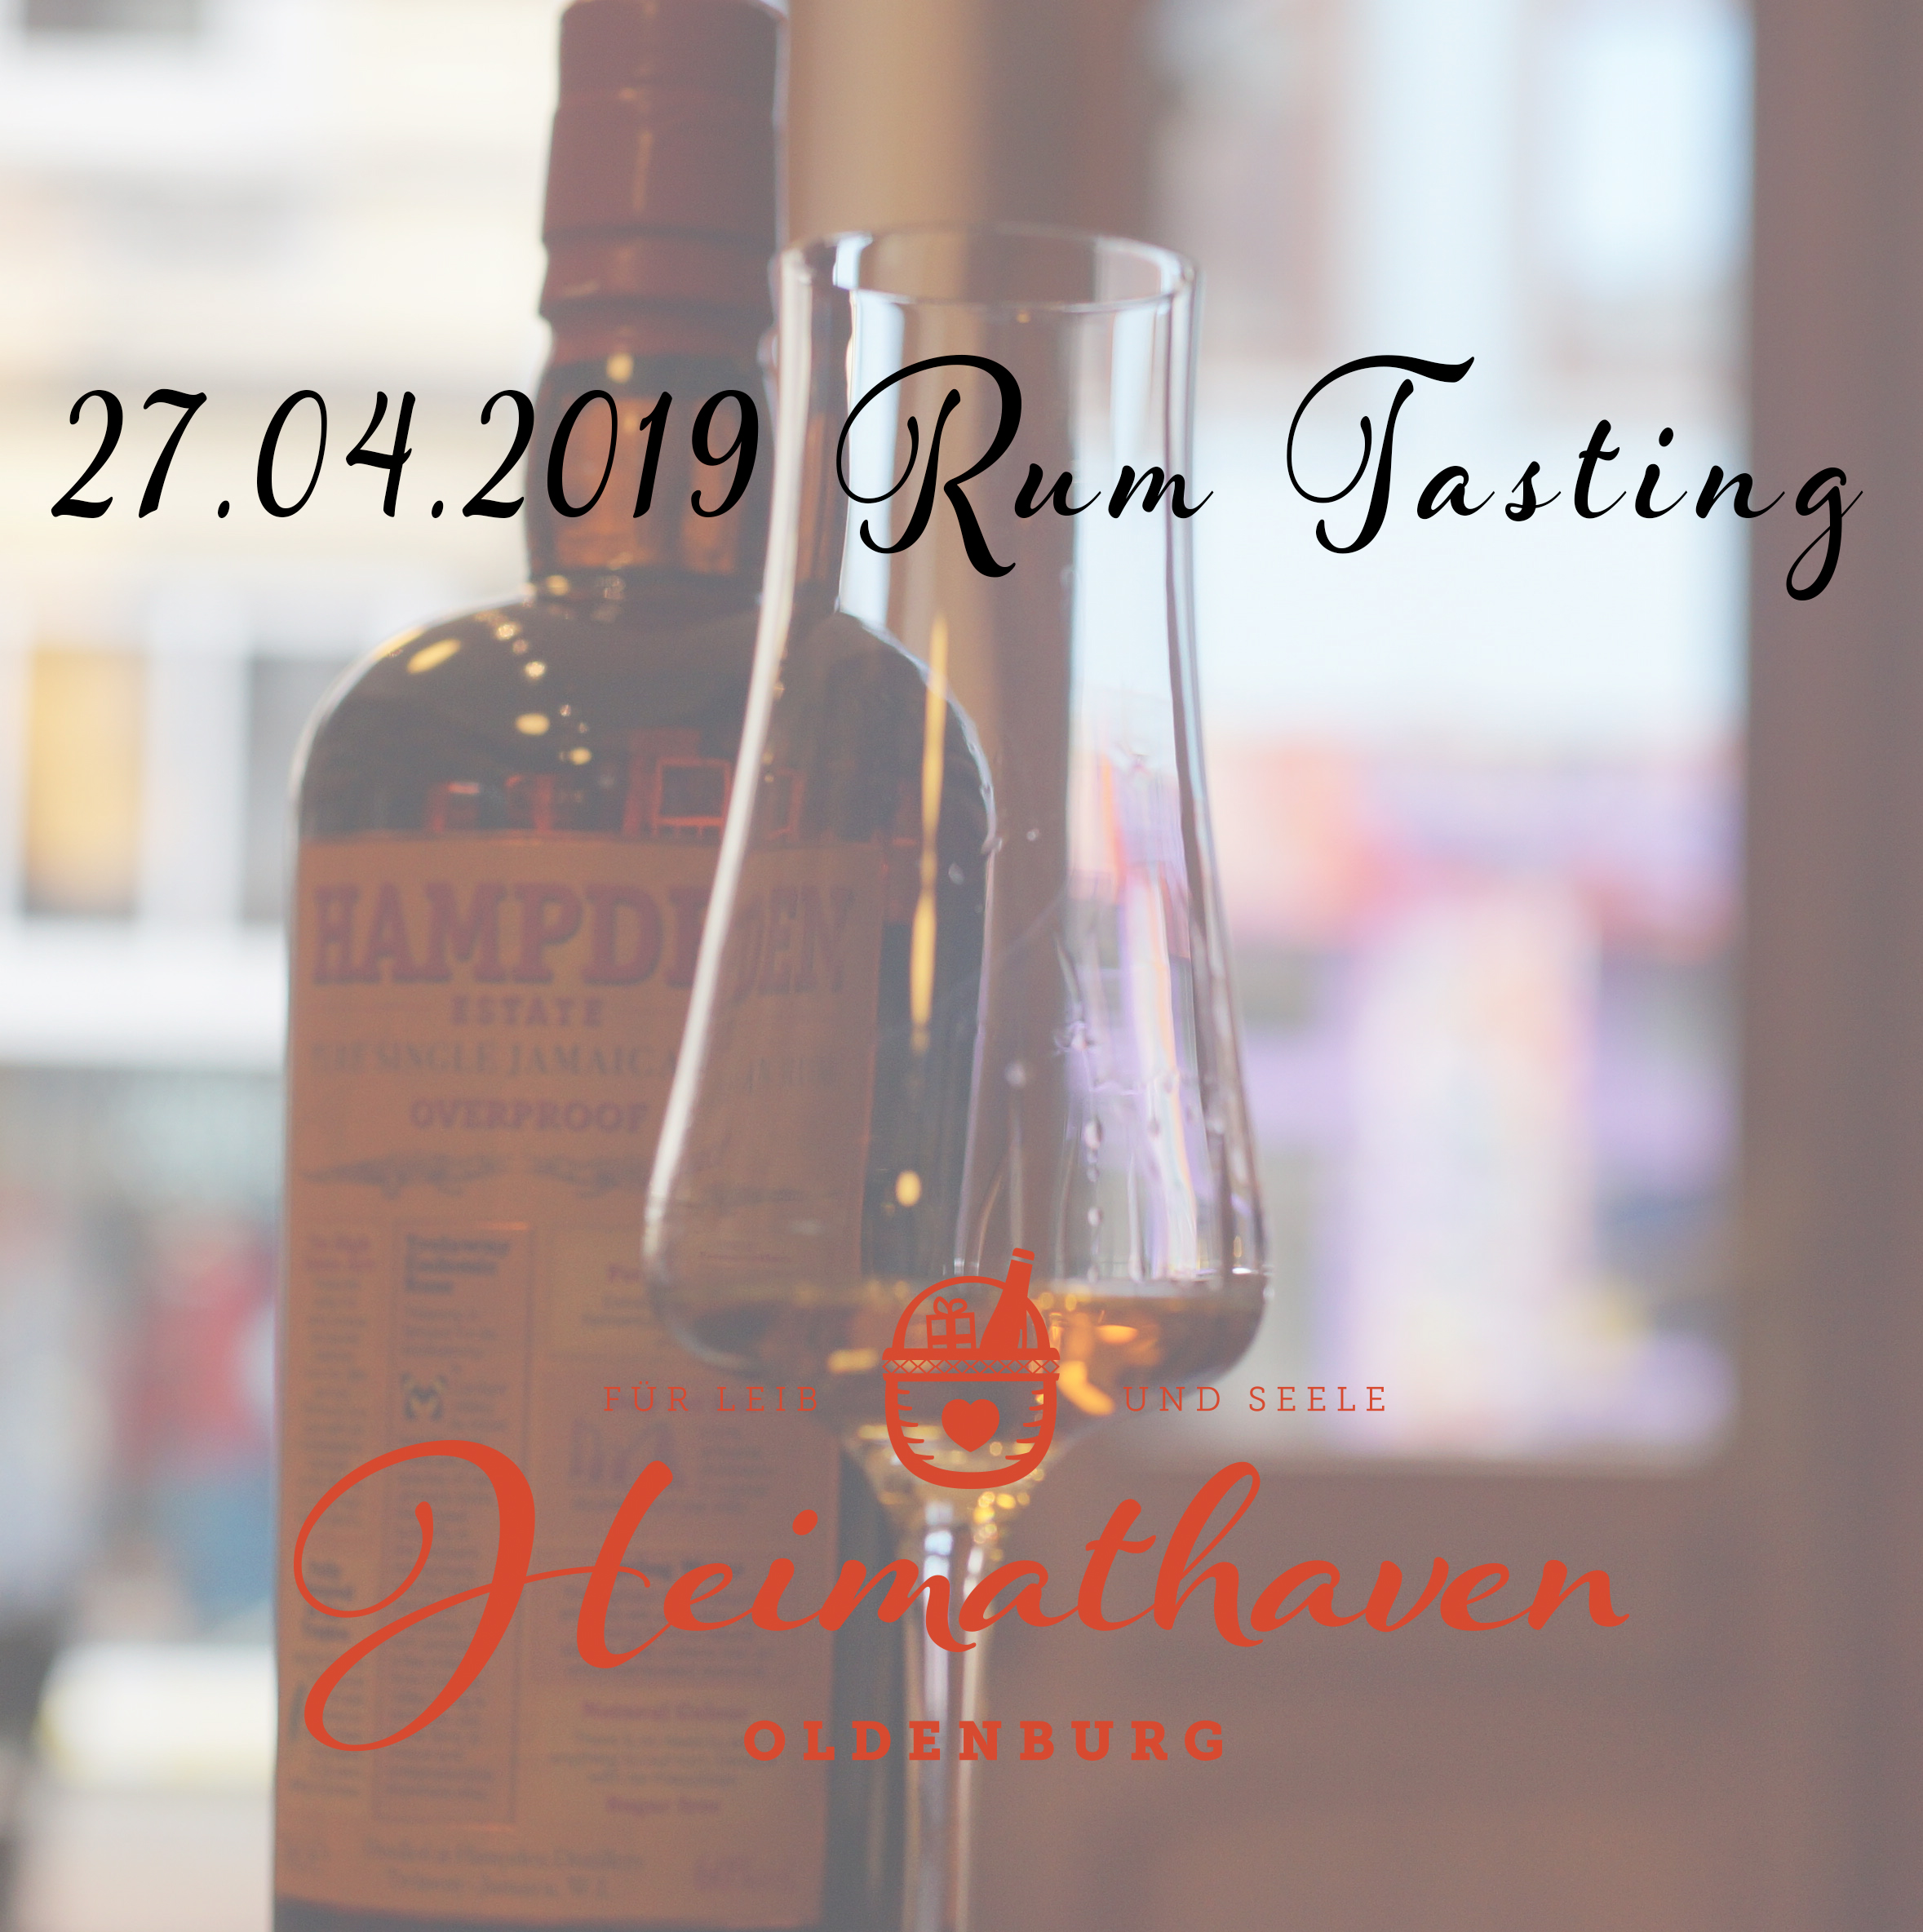 rum tasting oldenburg heimathaven oldenburg. Black Bedroom Furniture Sets. Home Design Ideas